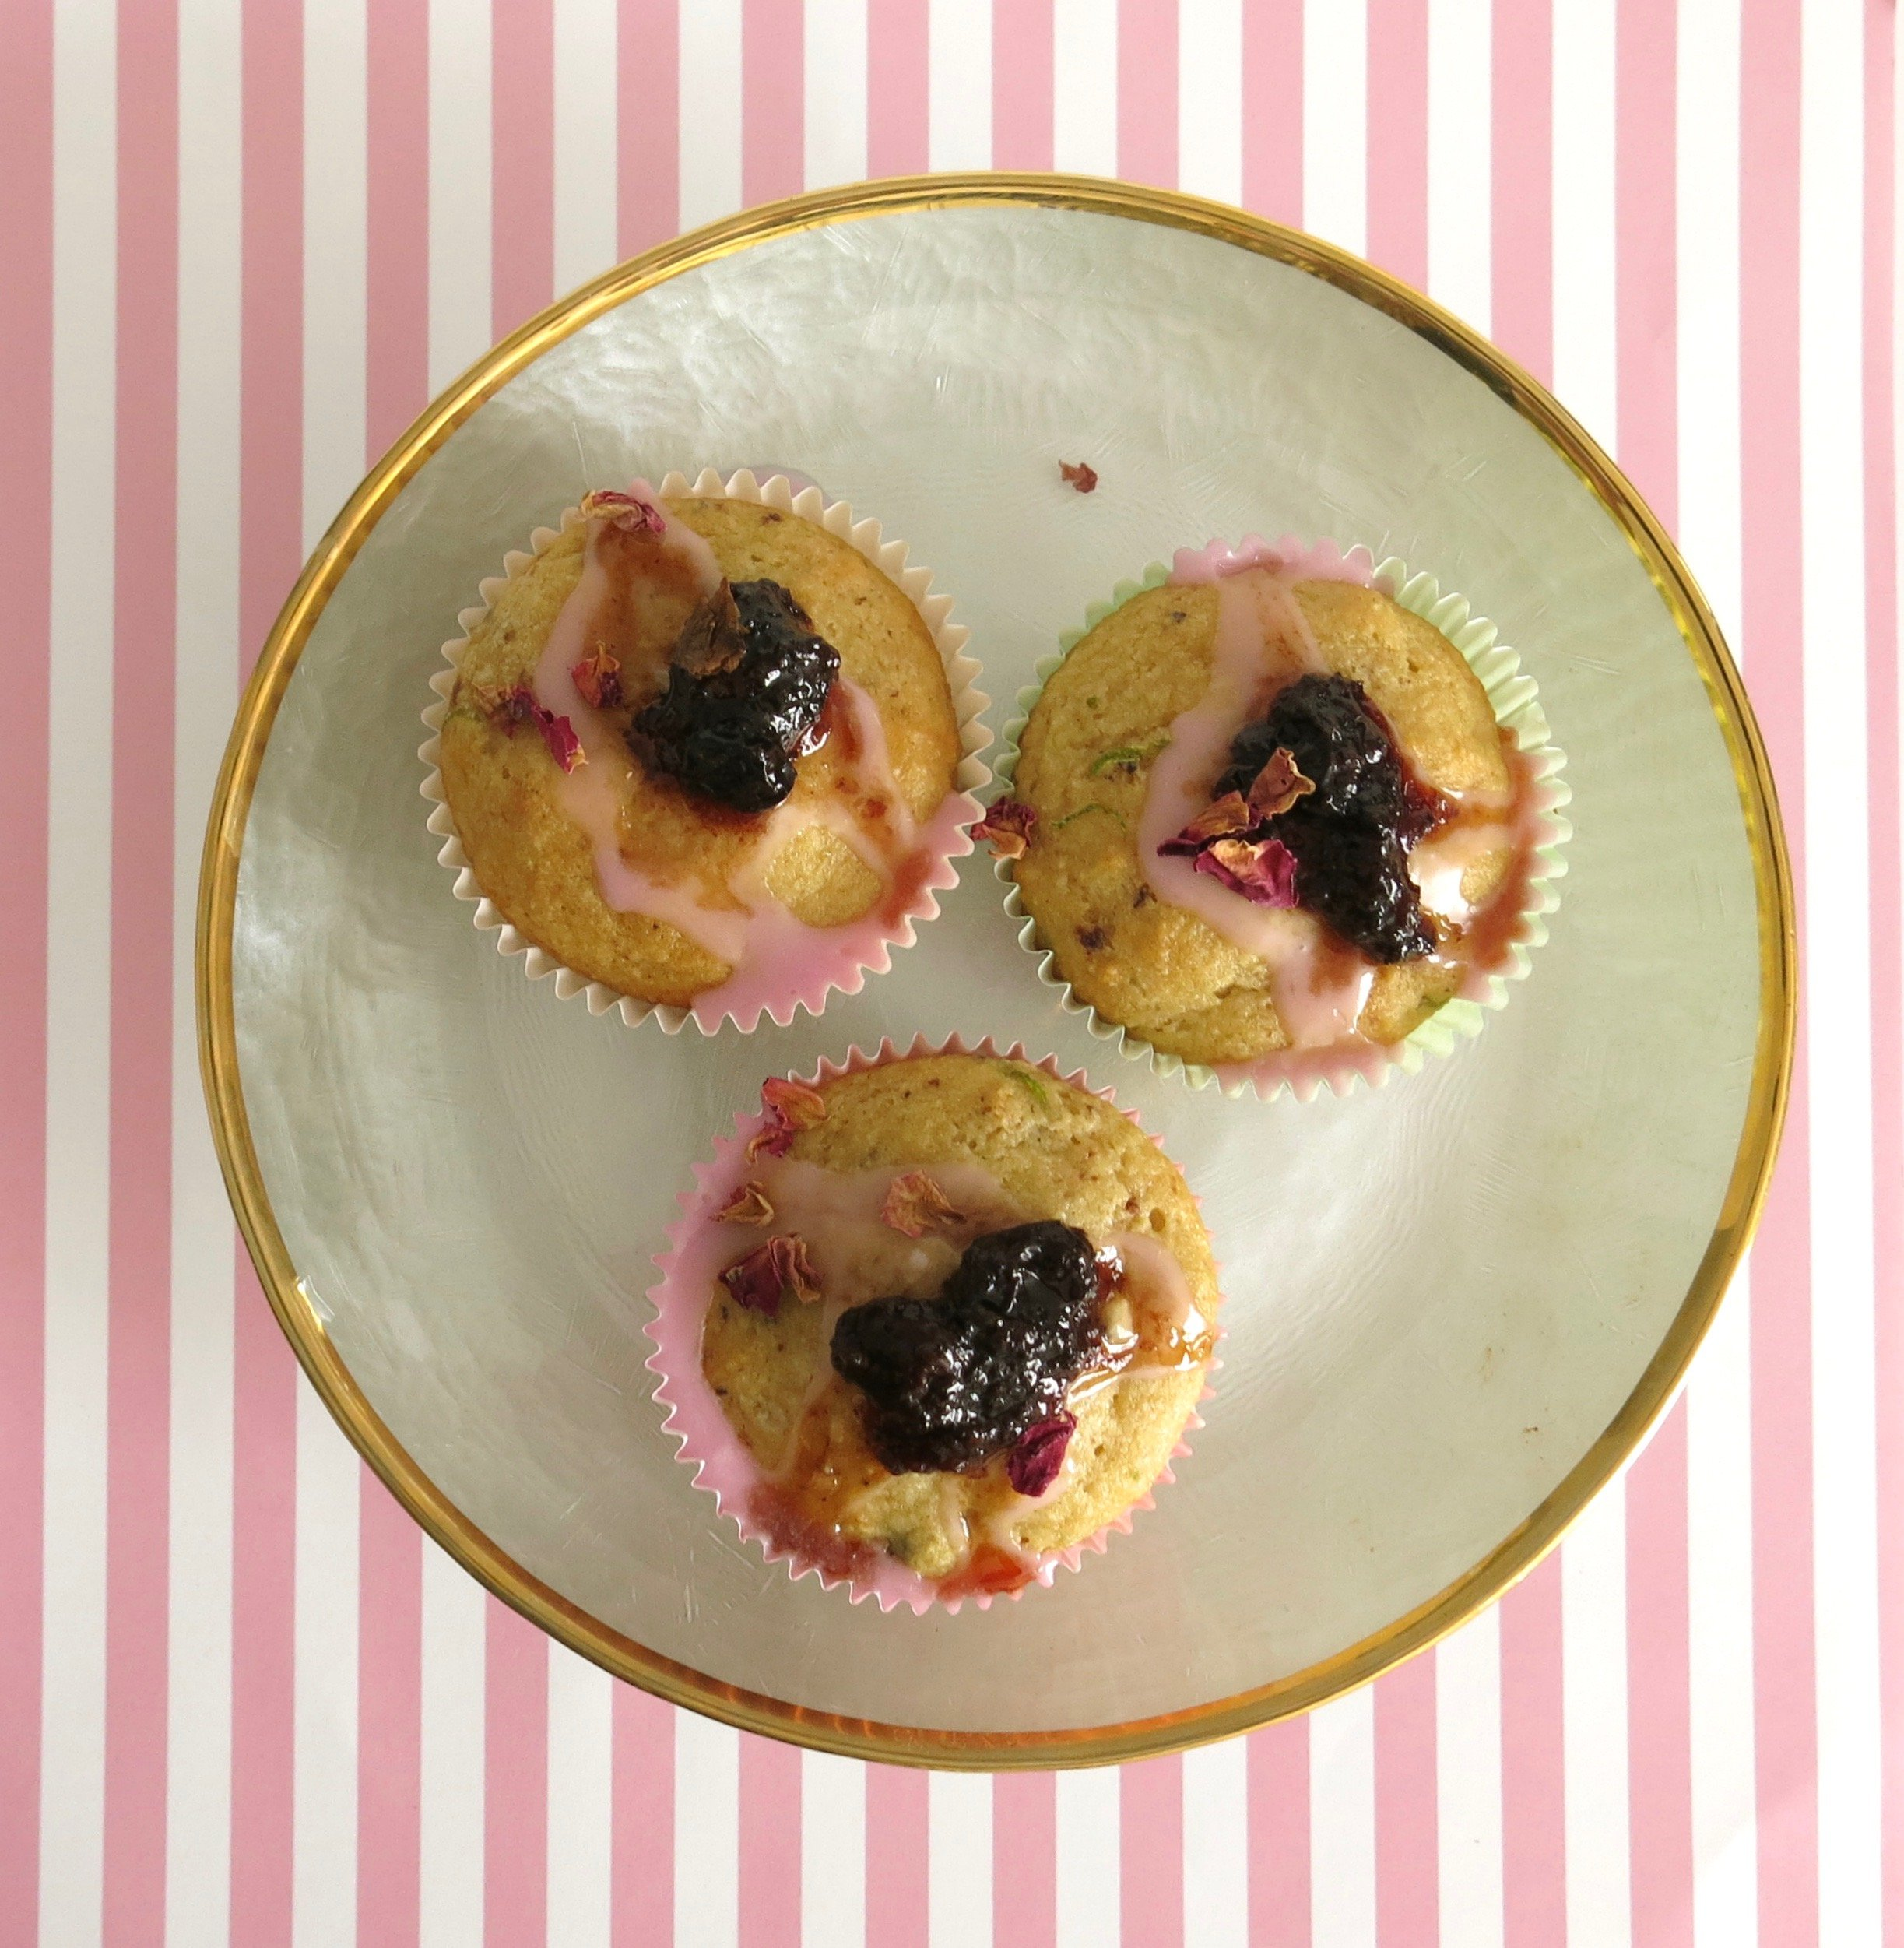 almond and spiced raisin fairy cakes with rose glaze